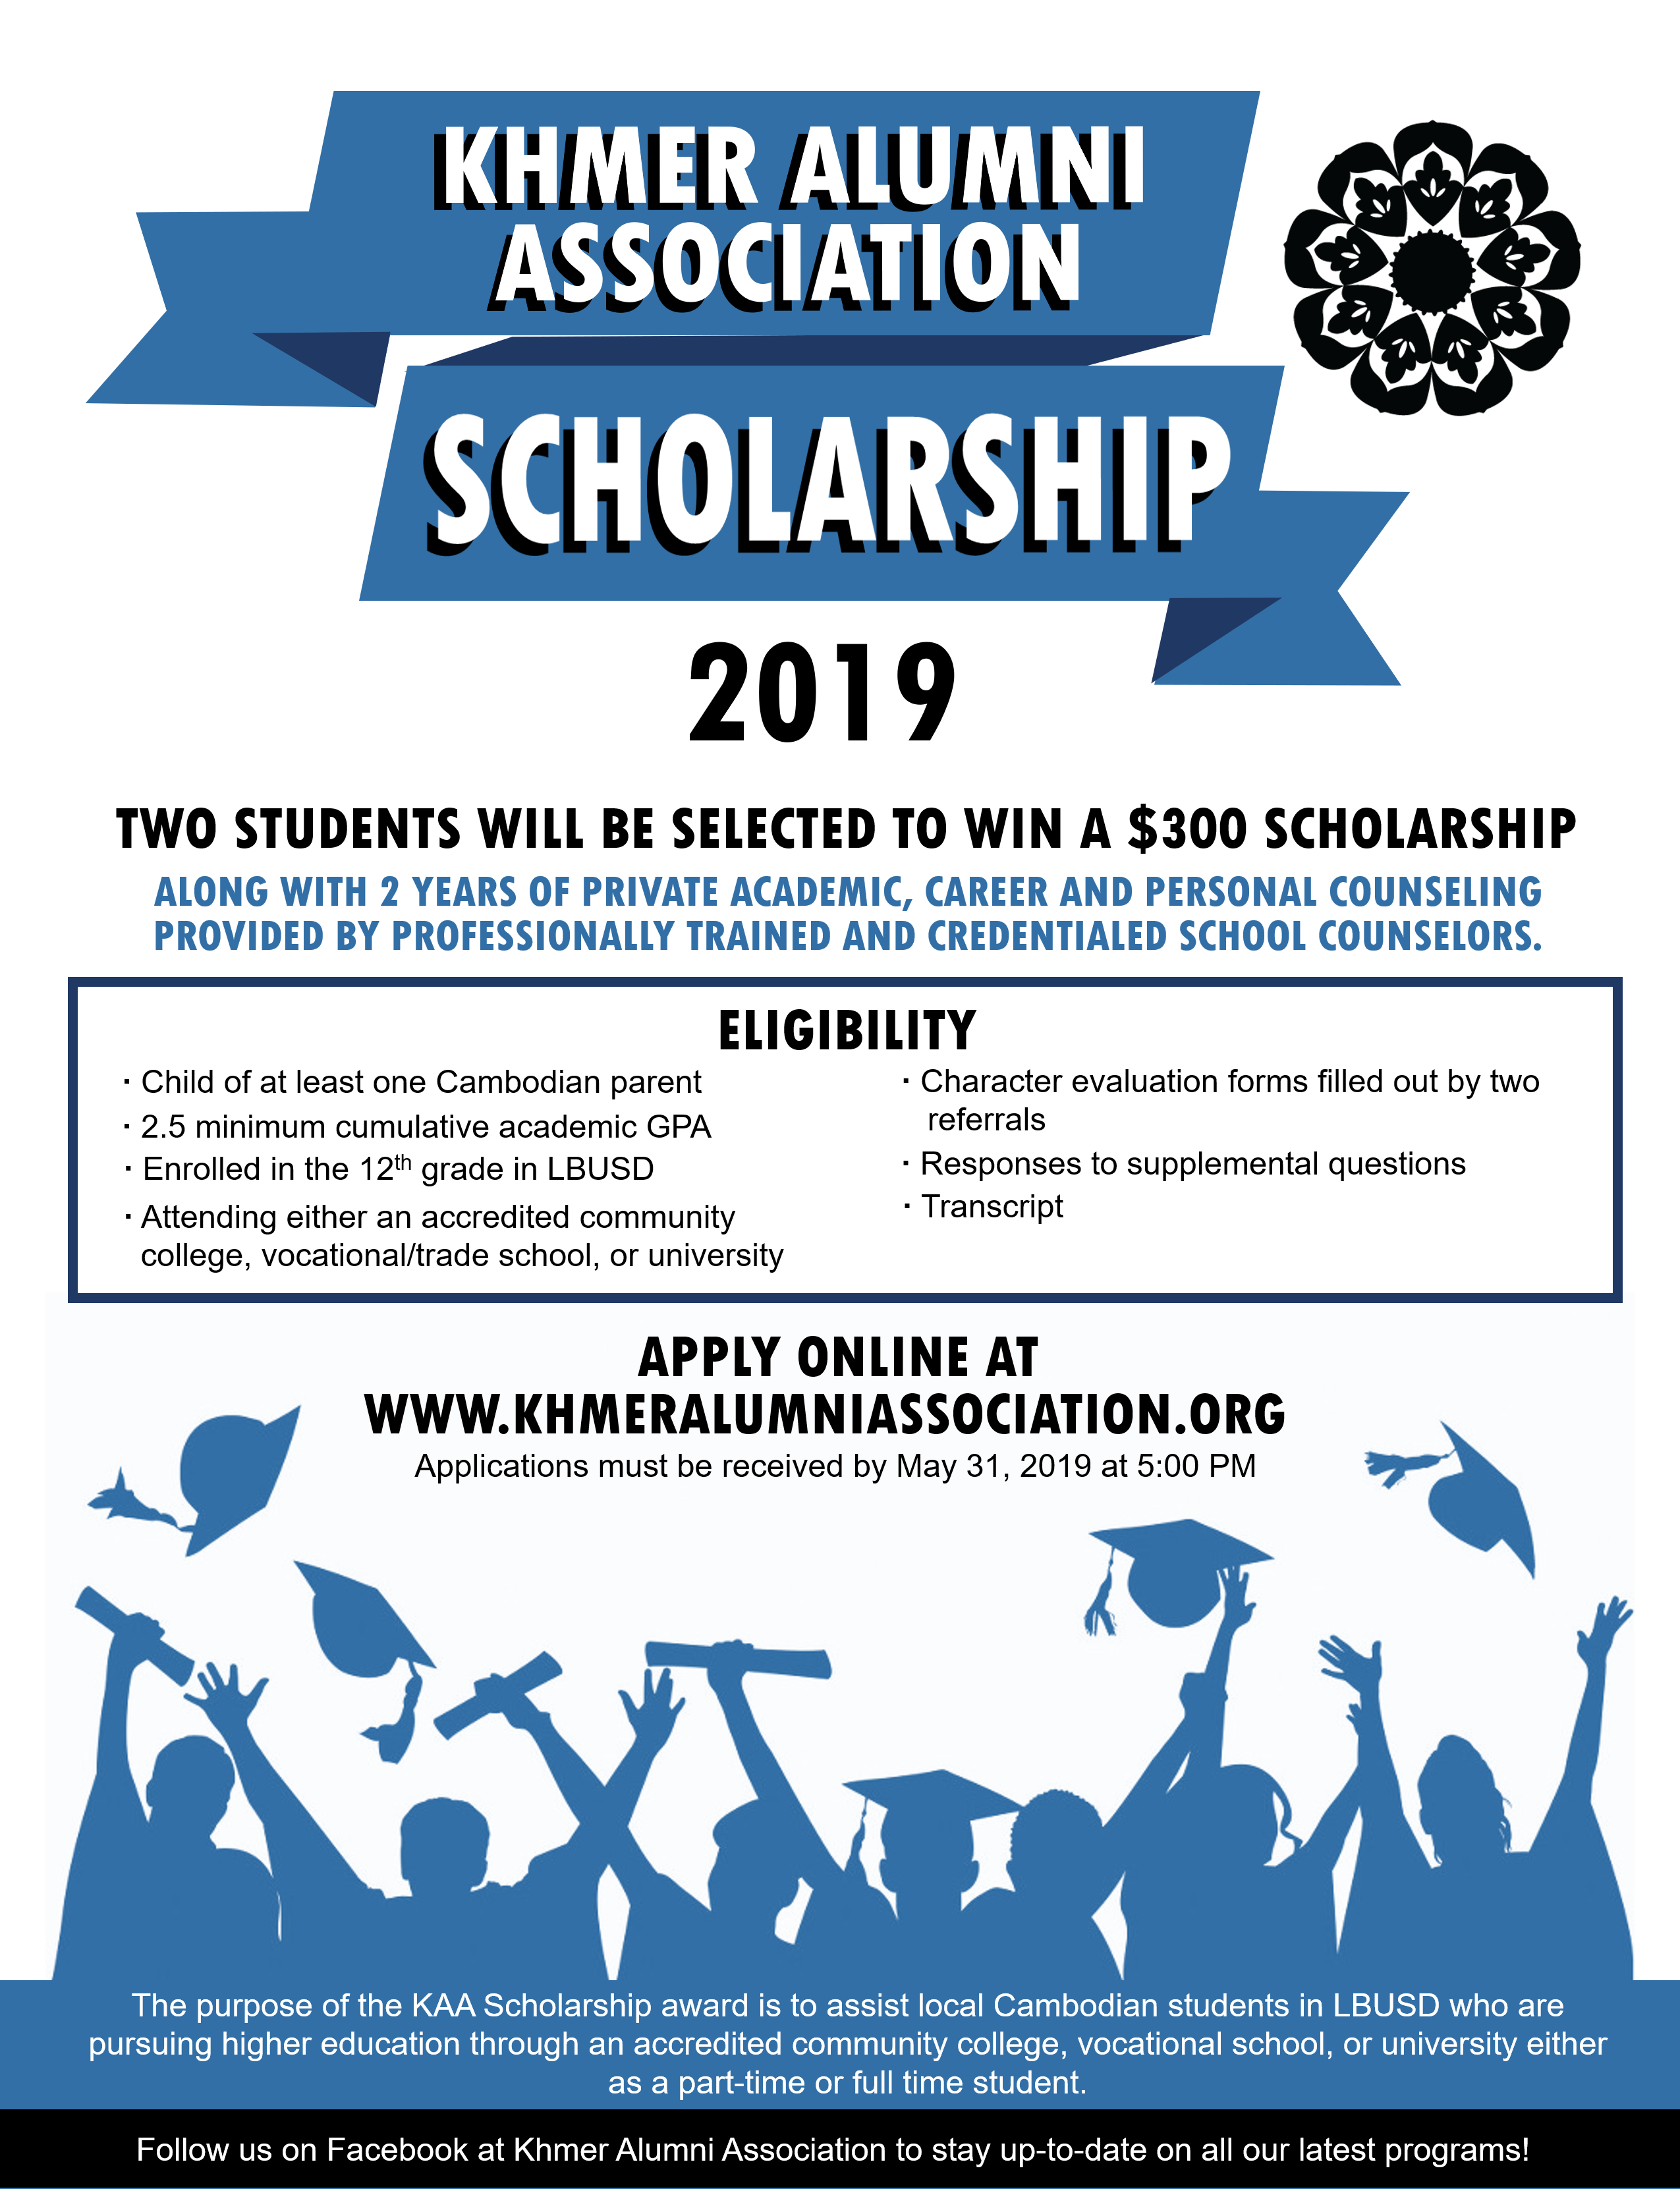 Khmer Alumni Association 2019 Scholarship Program